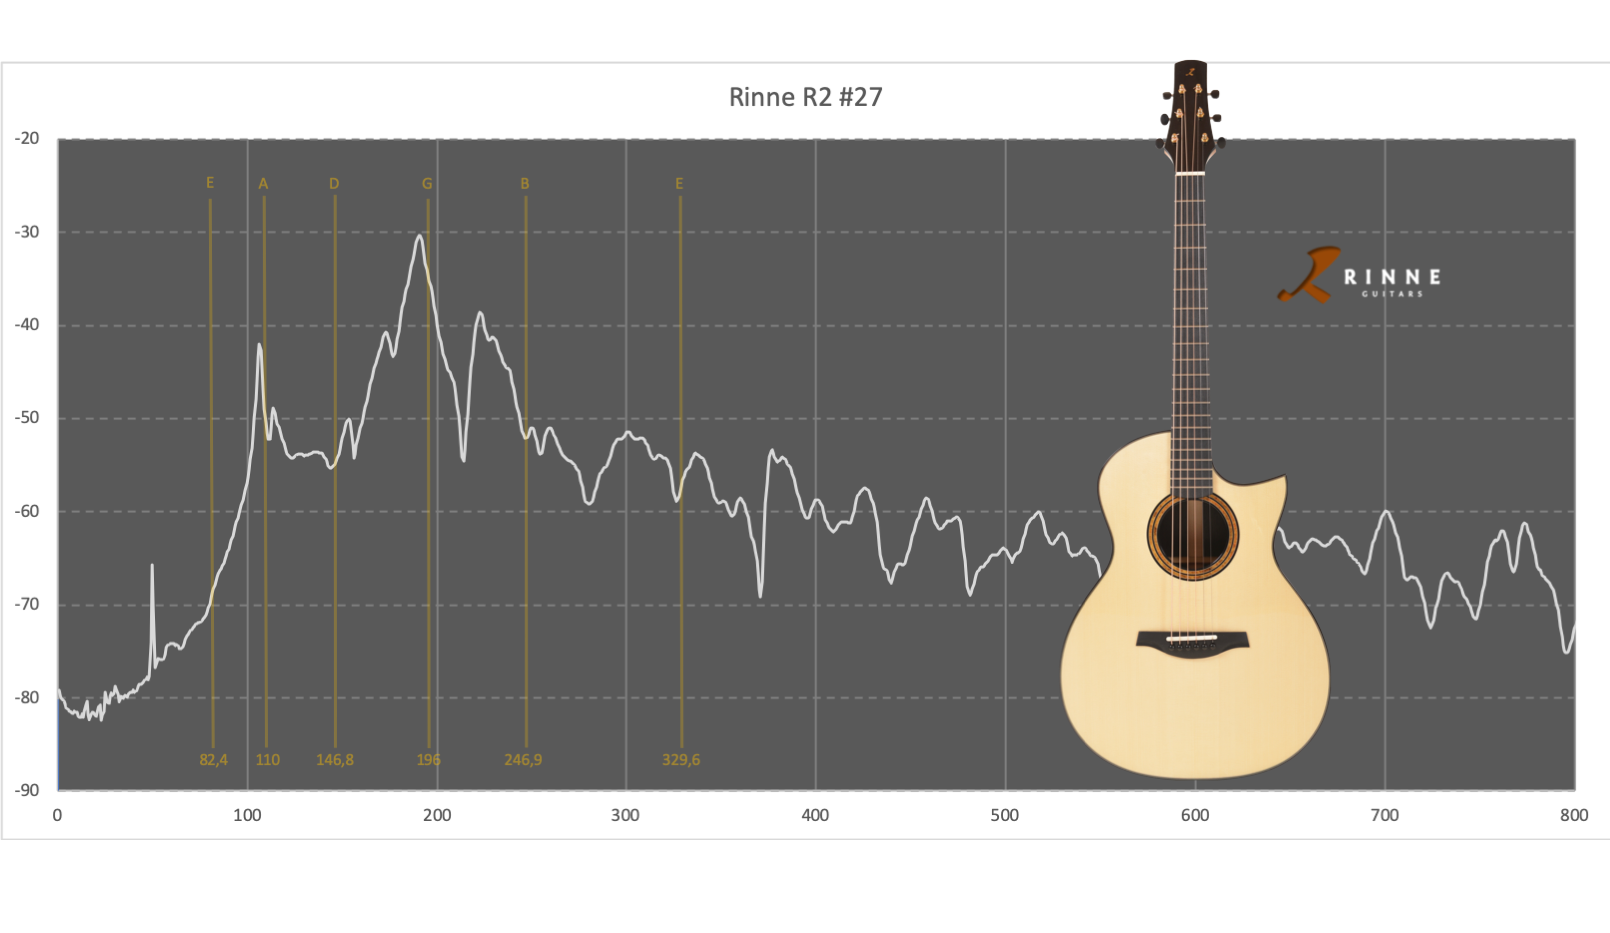 R.2 #27 frequency responce curve